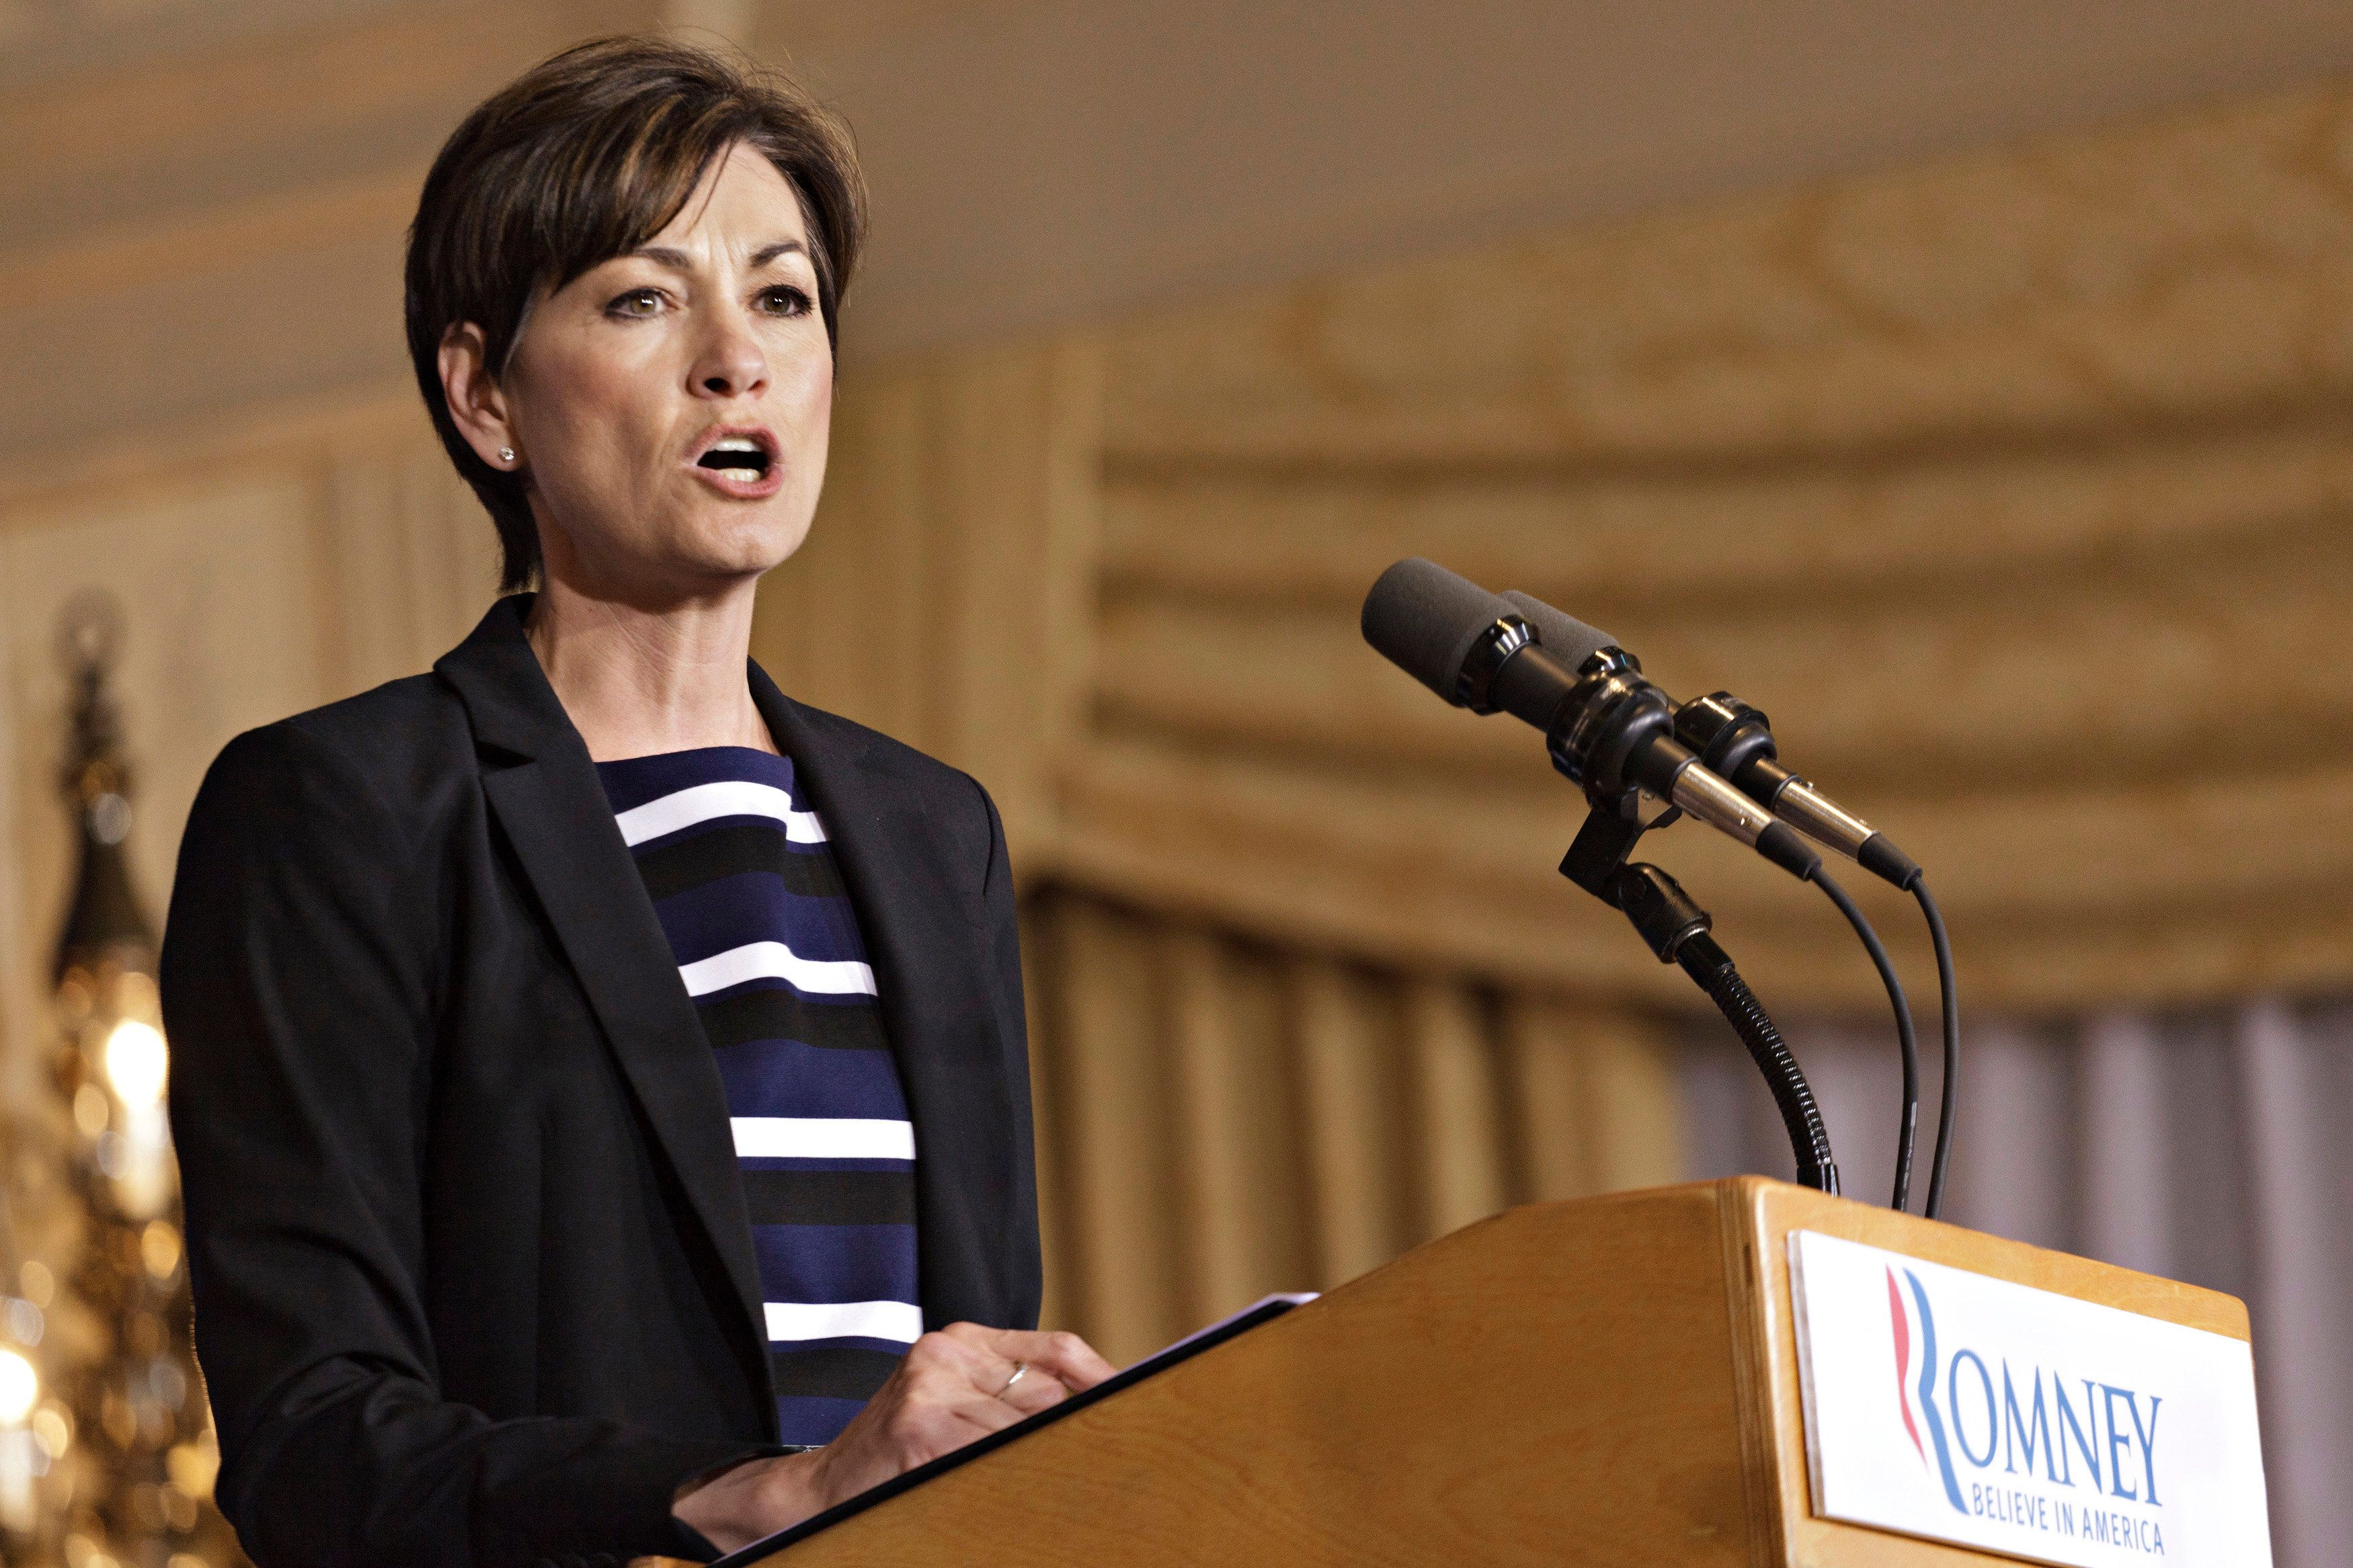 Iowa Lt. Gov. Kim Reynolds speaks to supporters of U.S. Republican presidential candidate and former Massachusetts governor Mitt Romney at Hotel Fort Des Moines in Des Moines, Iowa May 15, 2012. REUTERS/Brian C. Frank (UNITED STATES - Tags: POLITICS)